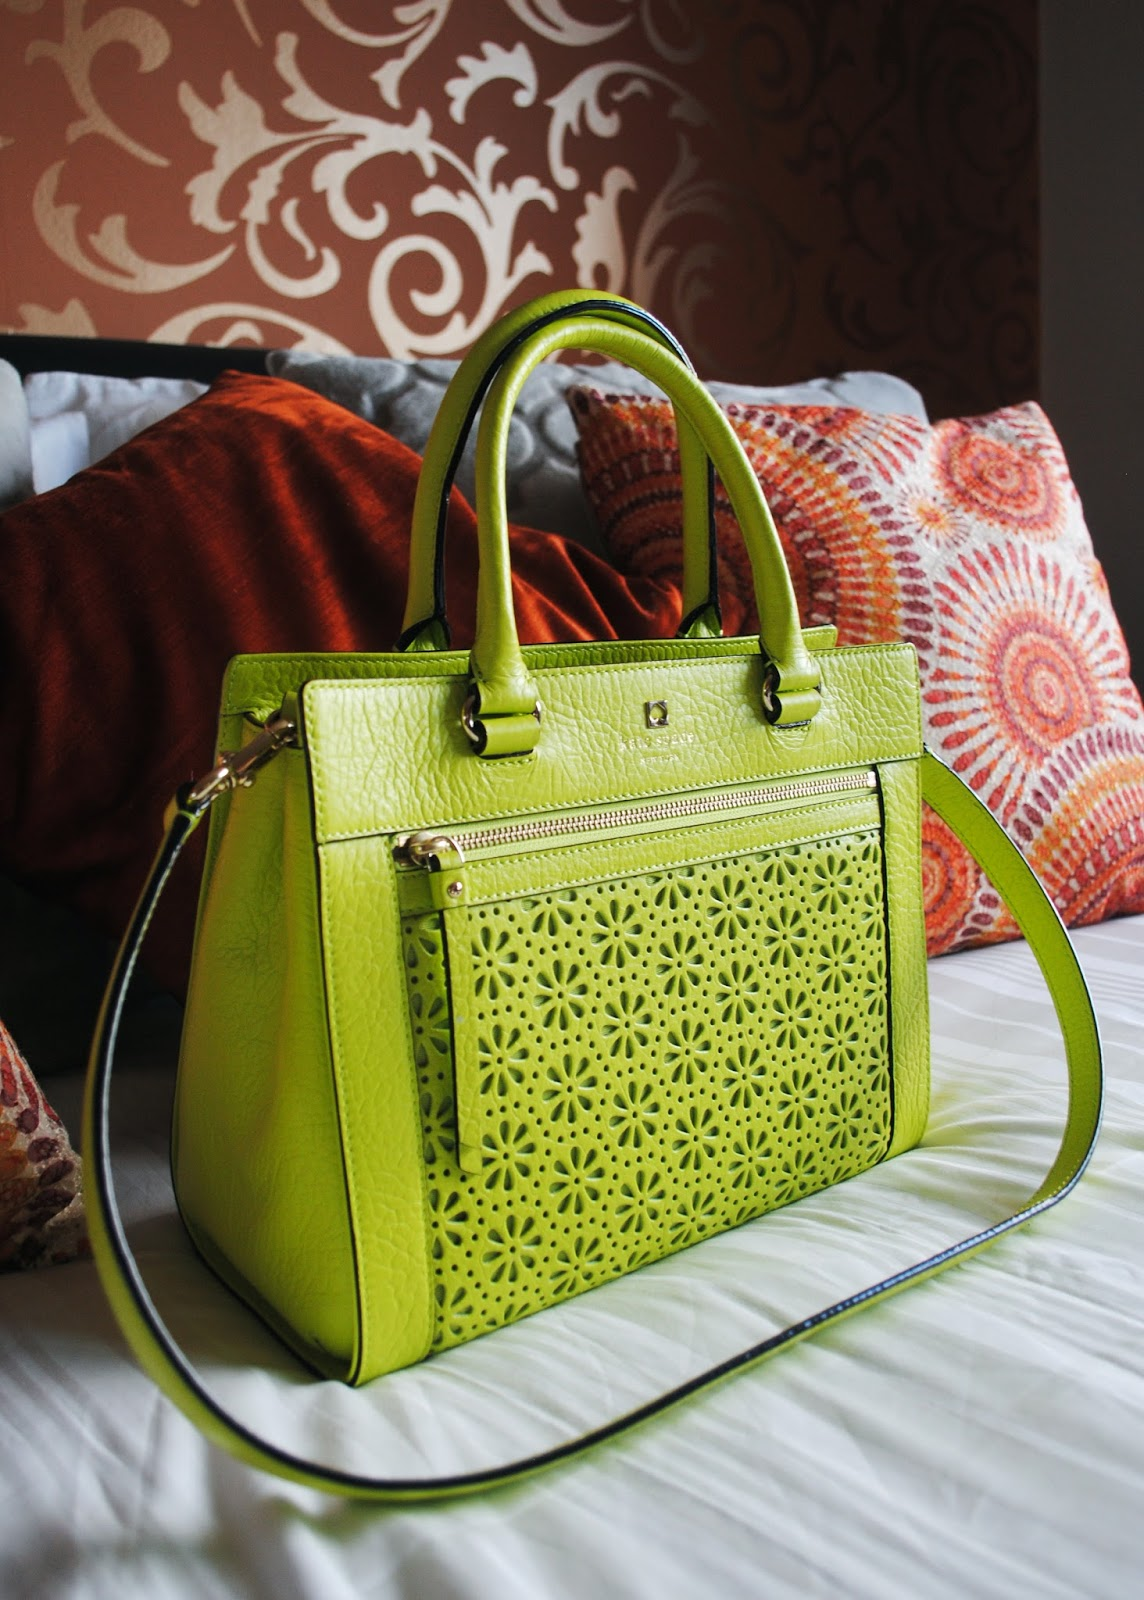 I Love A Good Bargain And Designer Handbag To My Delight Found Both This Week In Beautiful Lime Green Kate Spade Bag